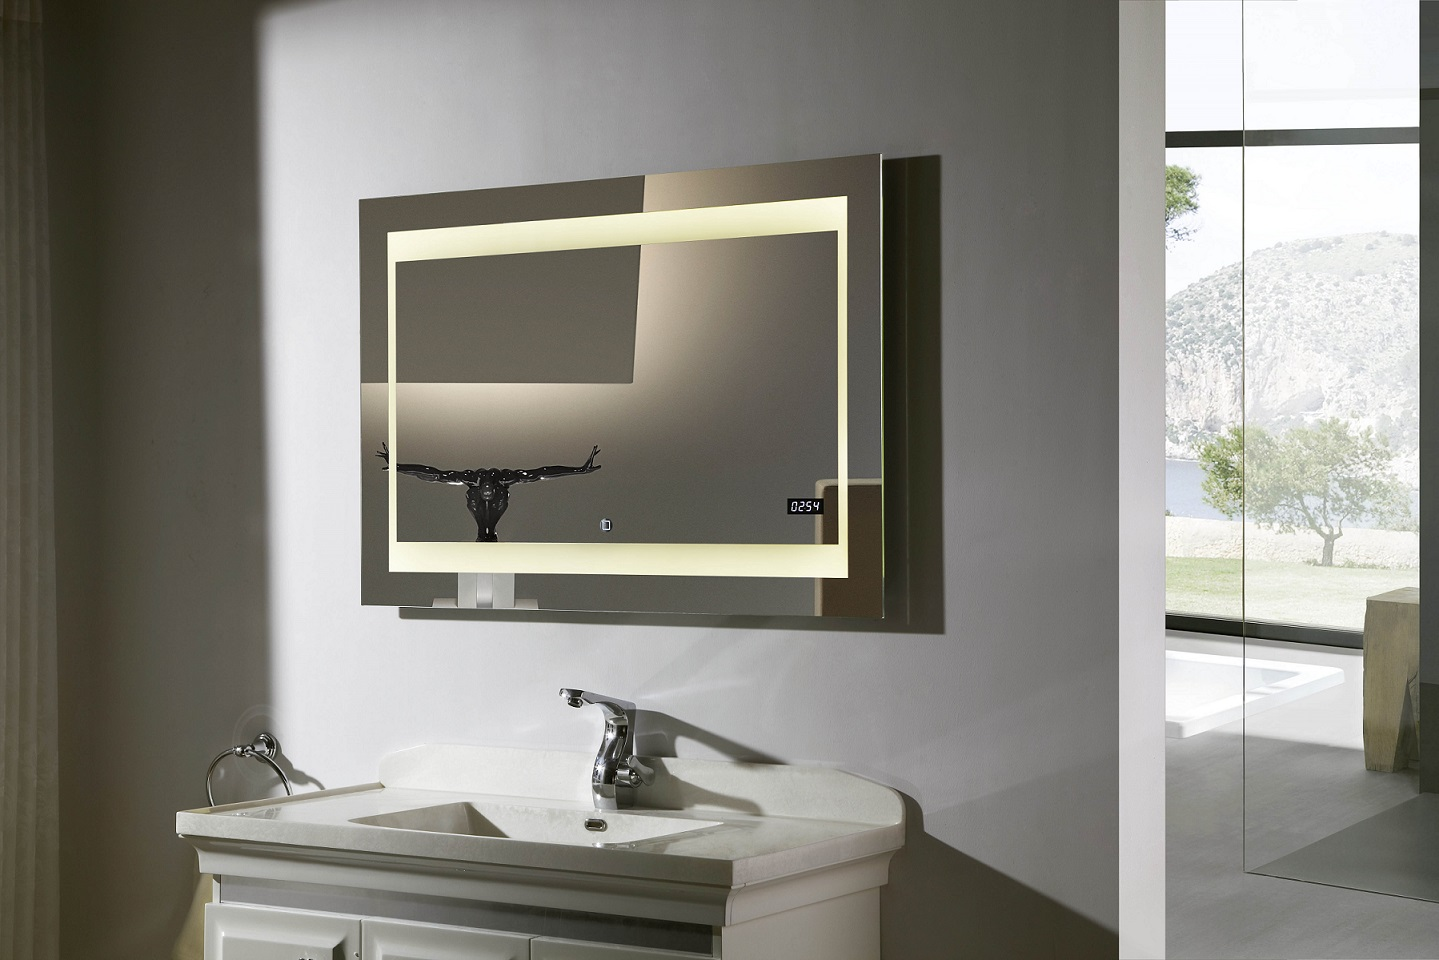 Zen ii lighted vanity mirror led bathroom mirror for Vanity mirrors for bathroom ideas